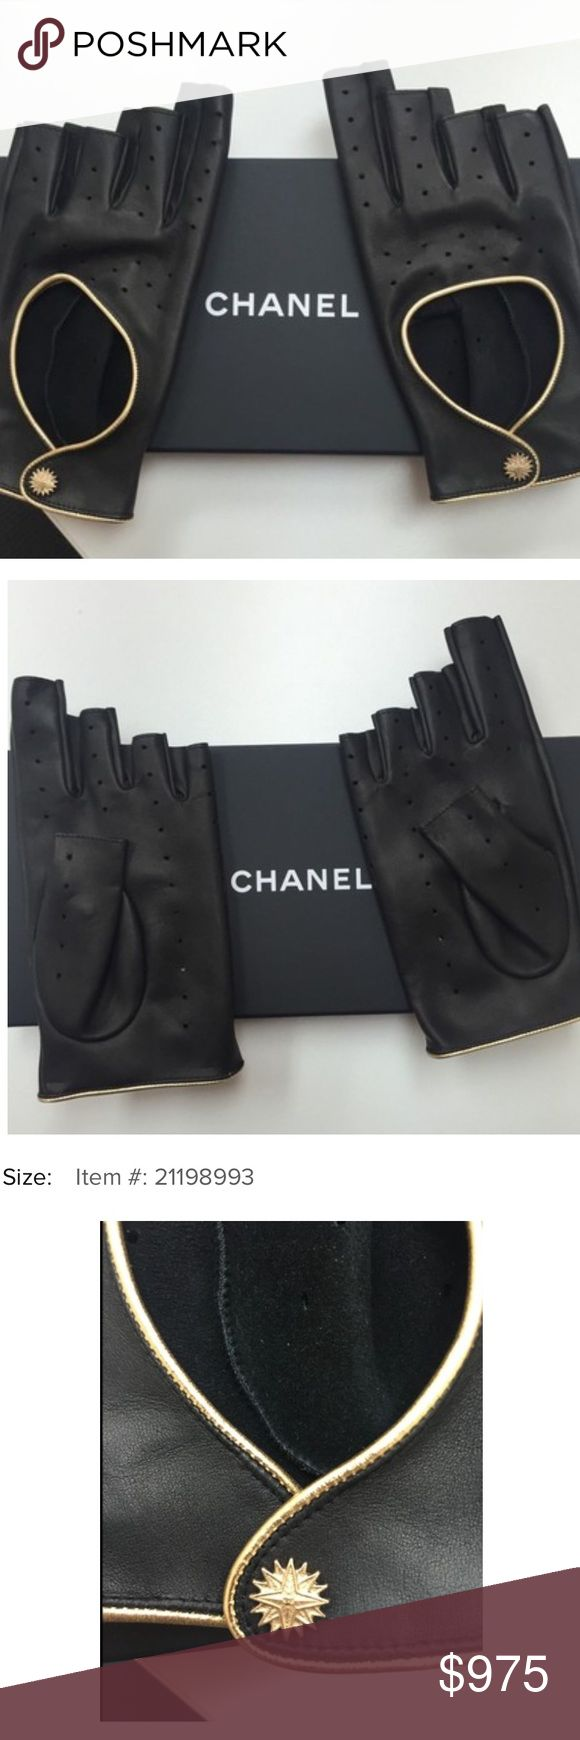 Gold driving gloves - Nwt Chanel Leather Fingerless Driving Gloves Chanel Driving Gloves Fingerless Black Leather With Gold Trim